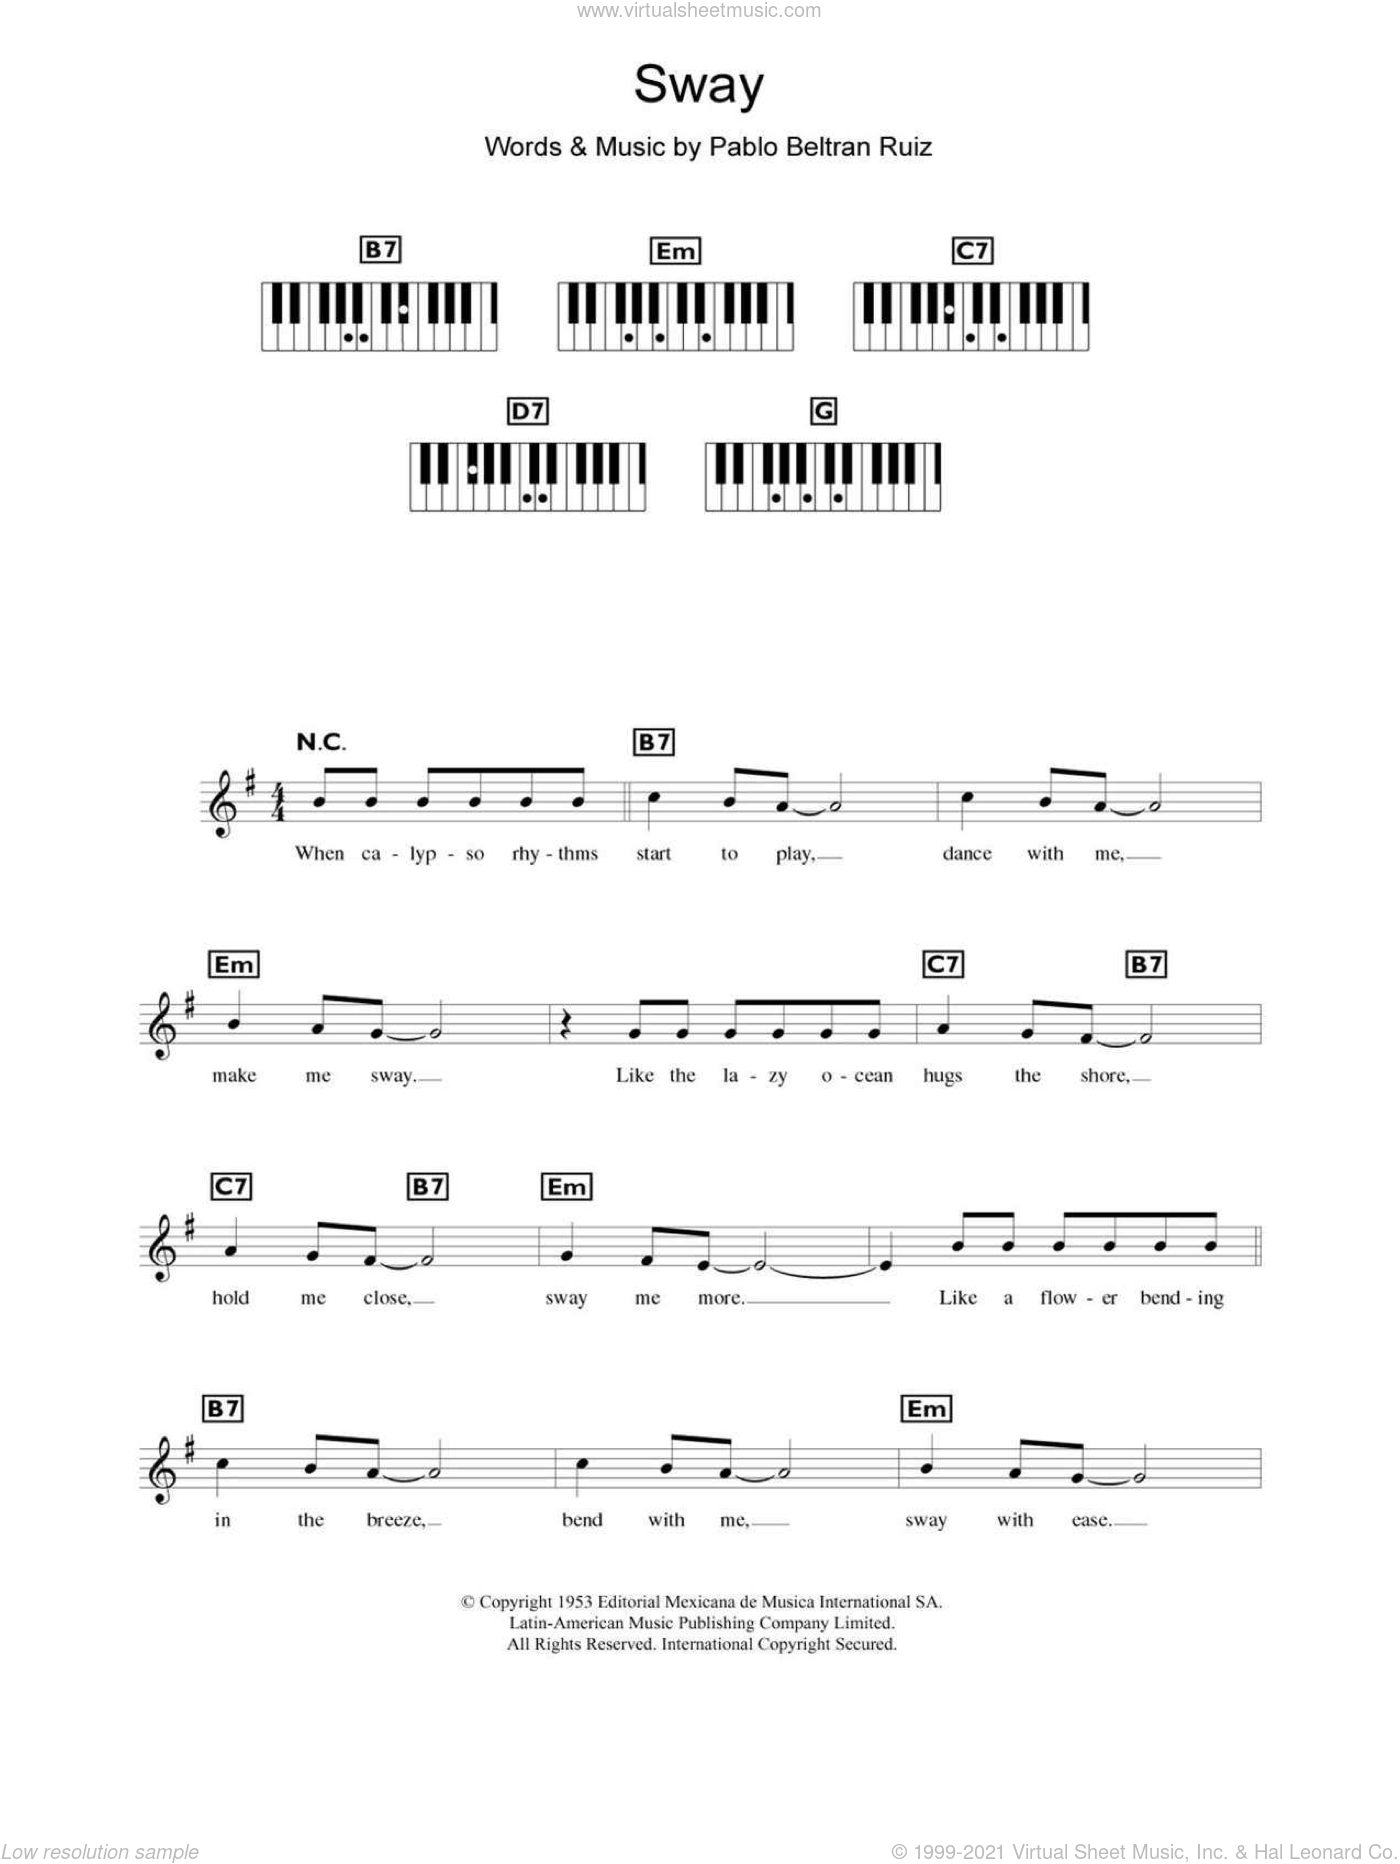 Sway (Quien Sera) sheet music for piano solo (chords, lyrics, melody) by Dean Martin and Pablo Beltran Ruiz. Score Image Preview.